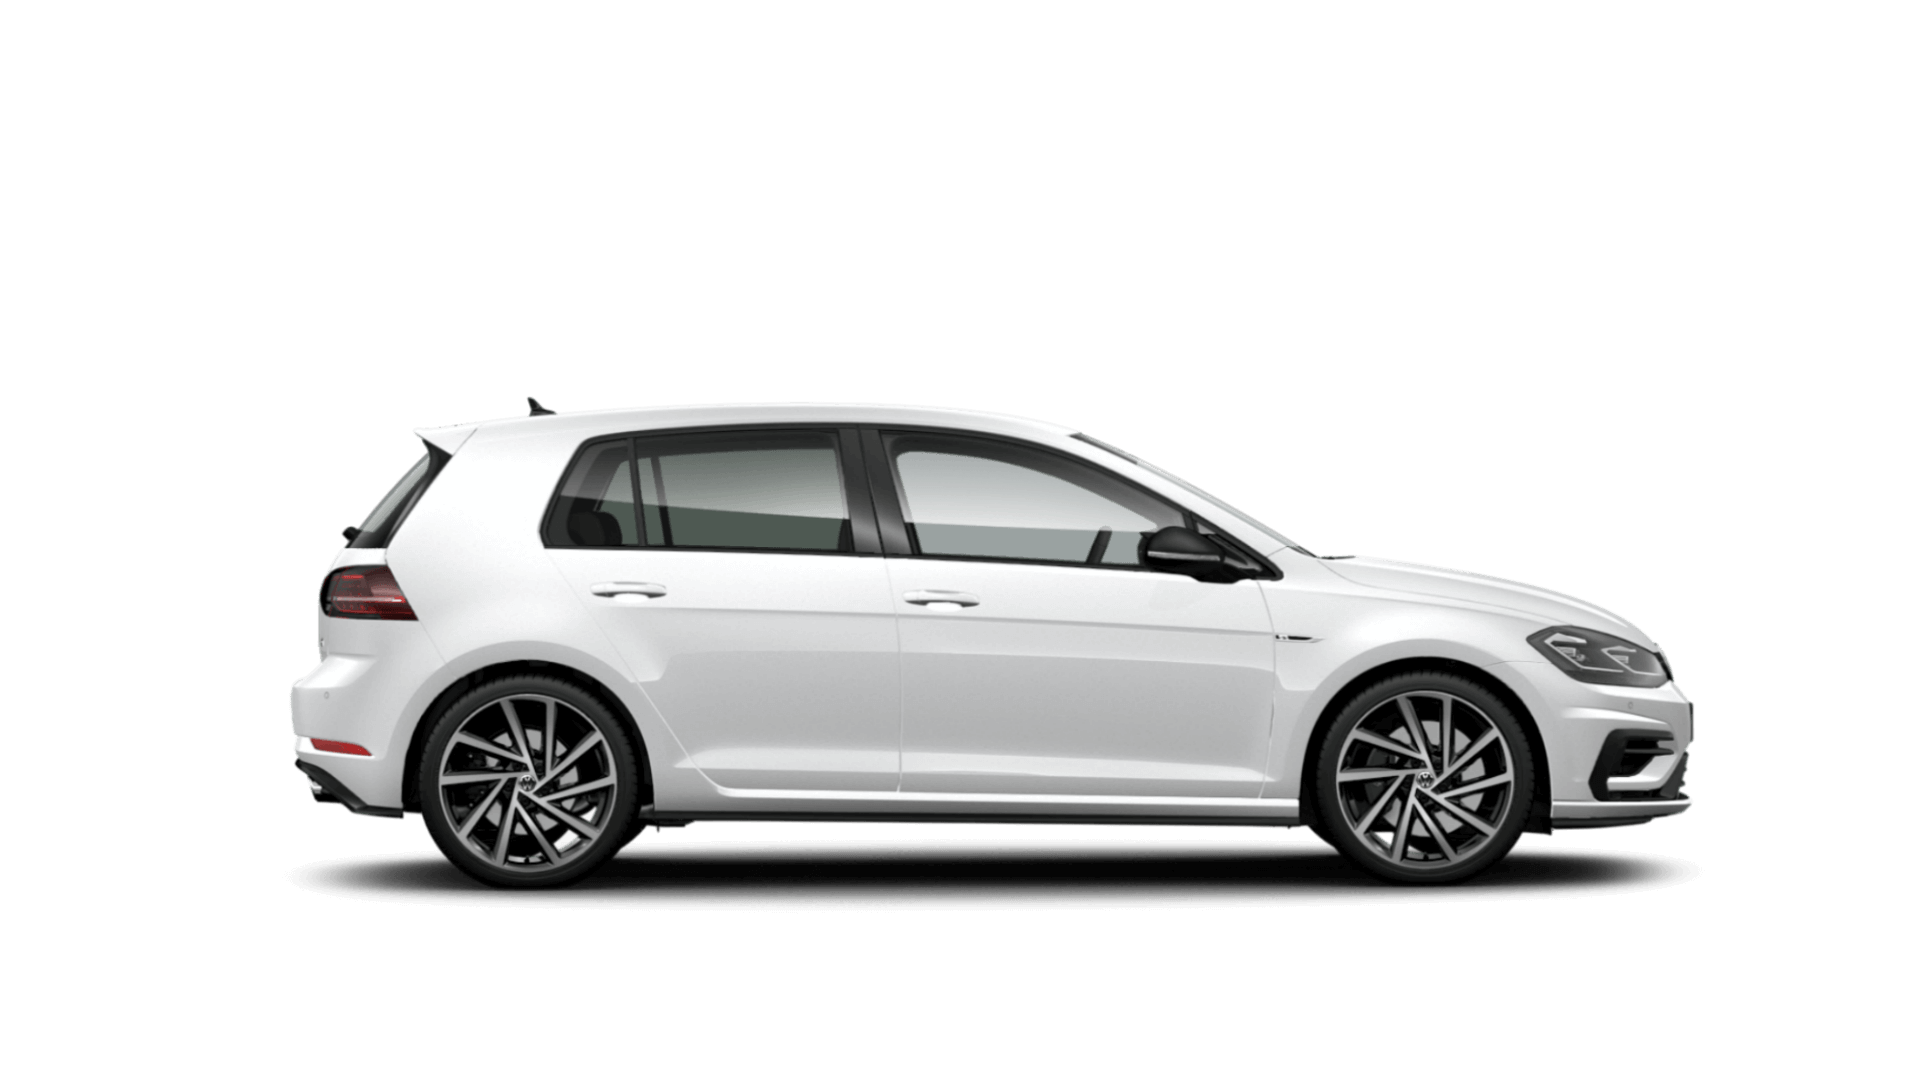 Golf R 7 Speed DSG